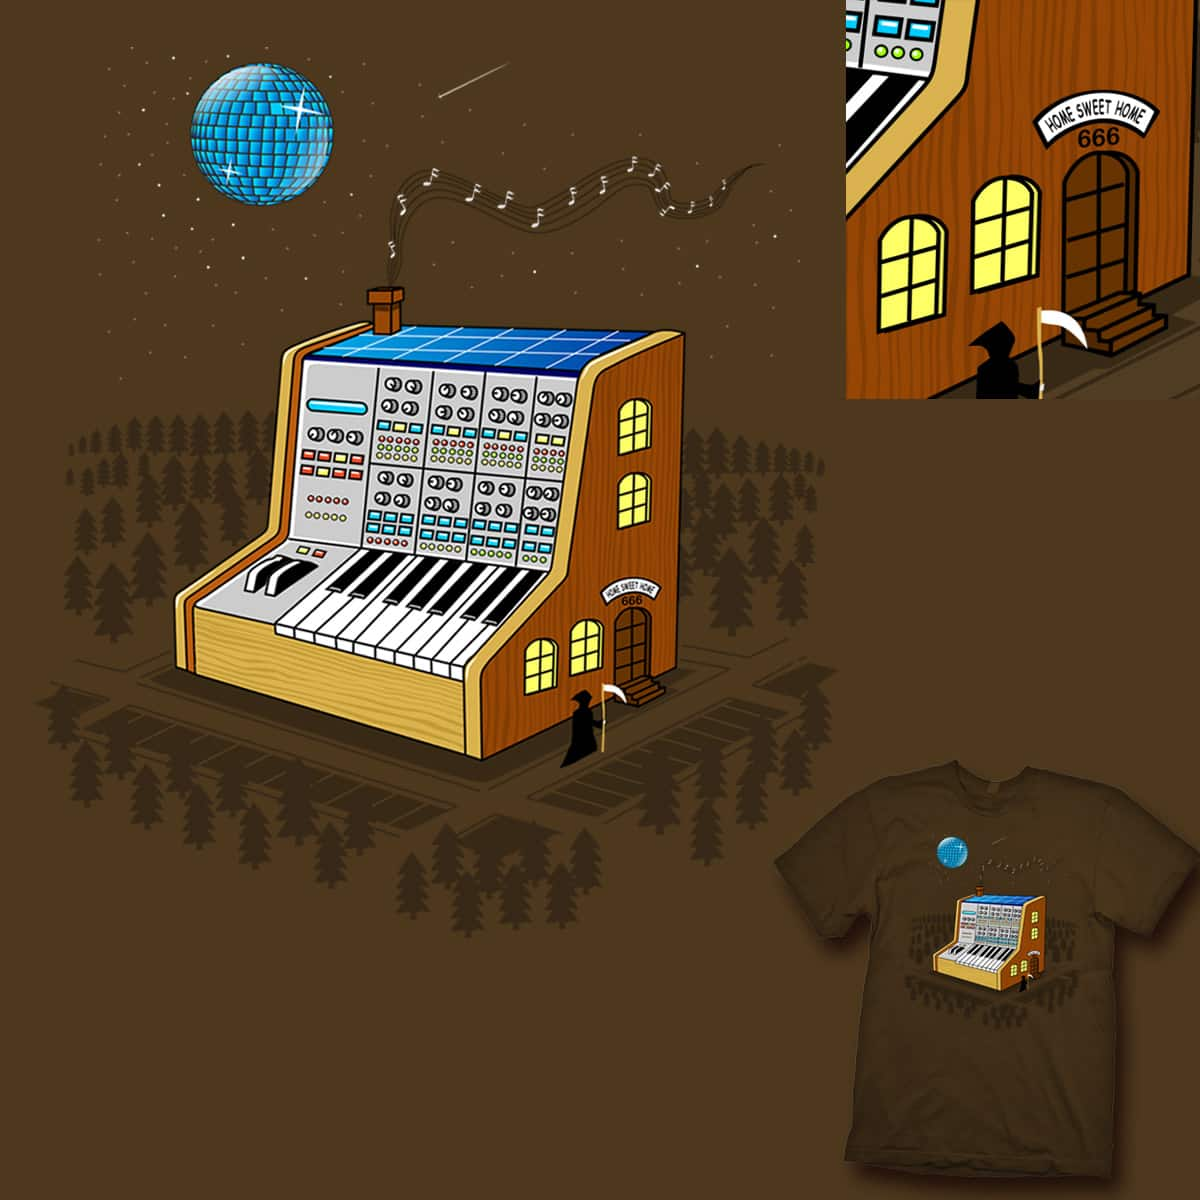 Home Sweet Home by kuli_grafis on Threadless